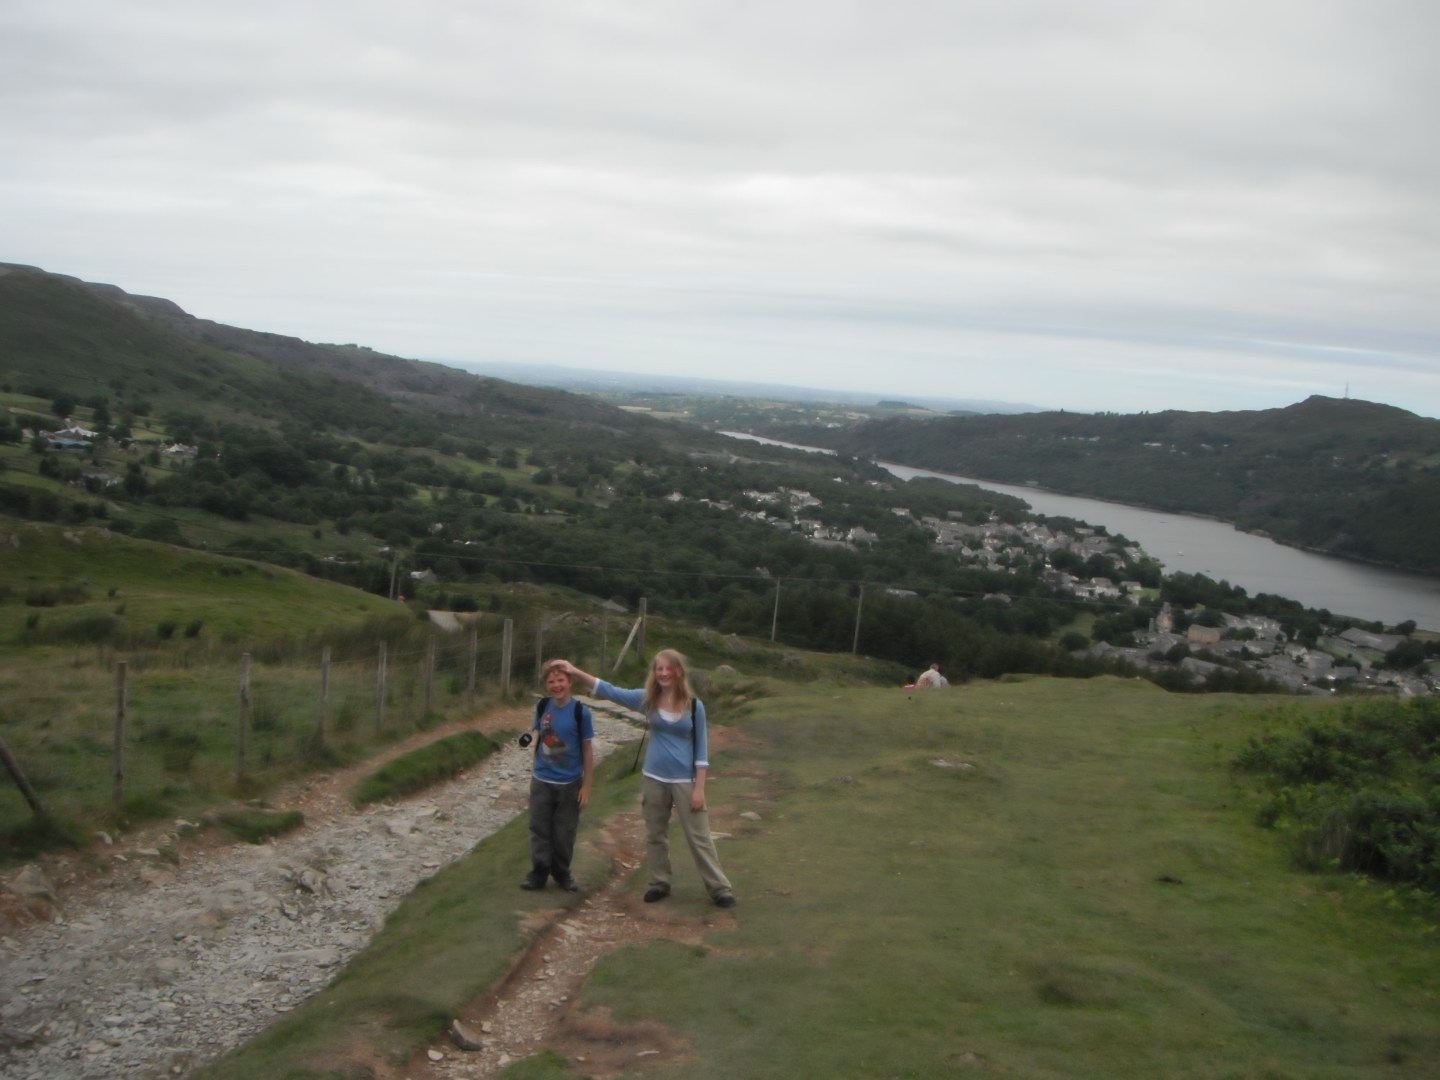 Xene and Lochlan at in Llanberis at the bottom of Mount Snowdon